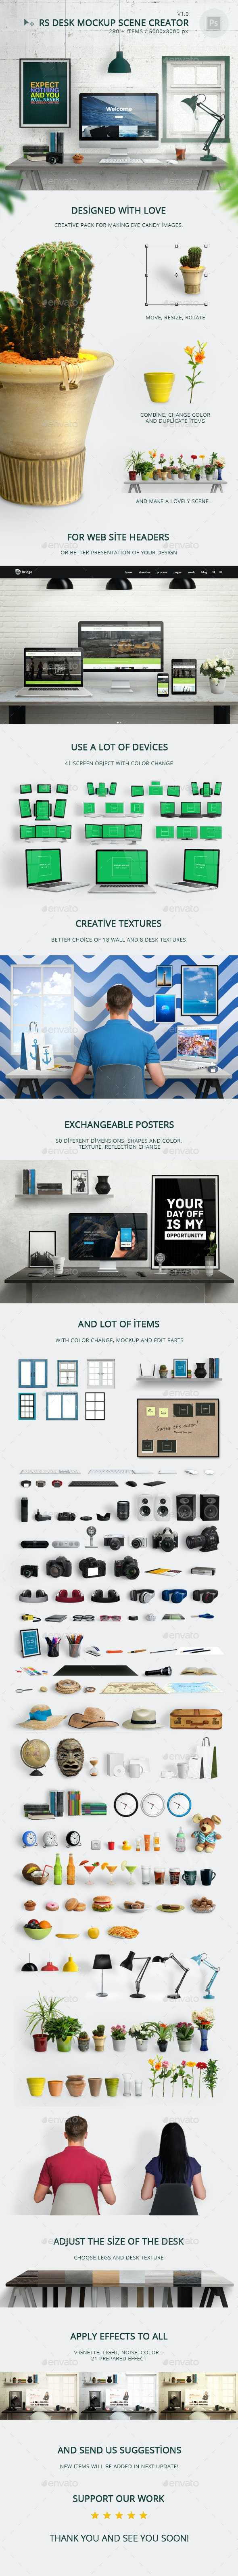 RS Desk Mockup Scene Creator - Hero Images Graphics